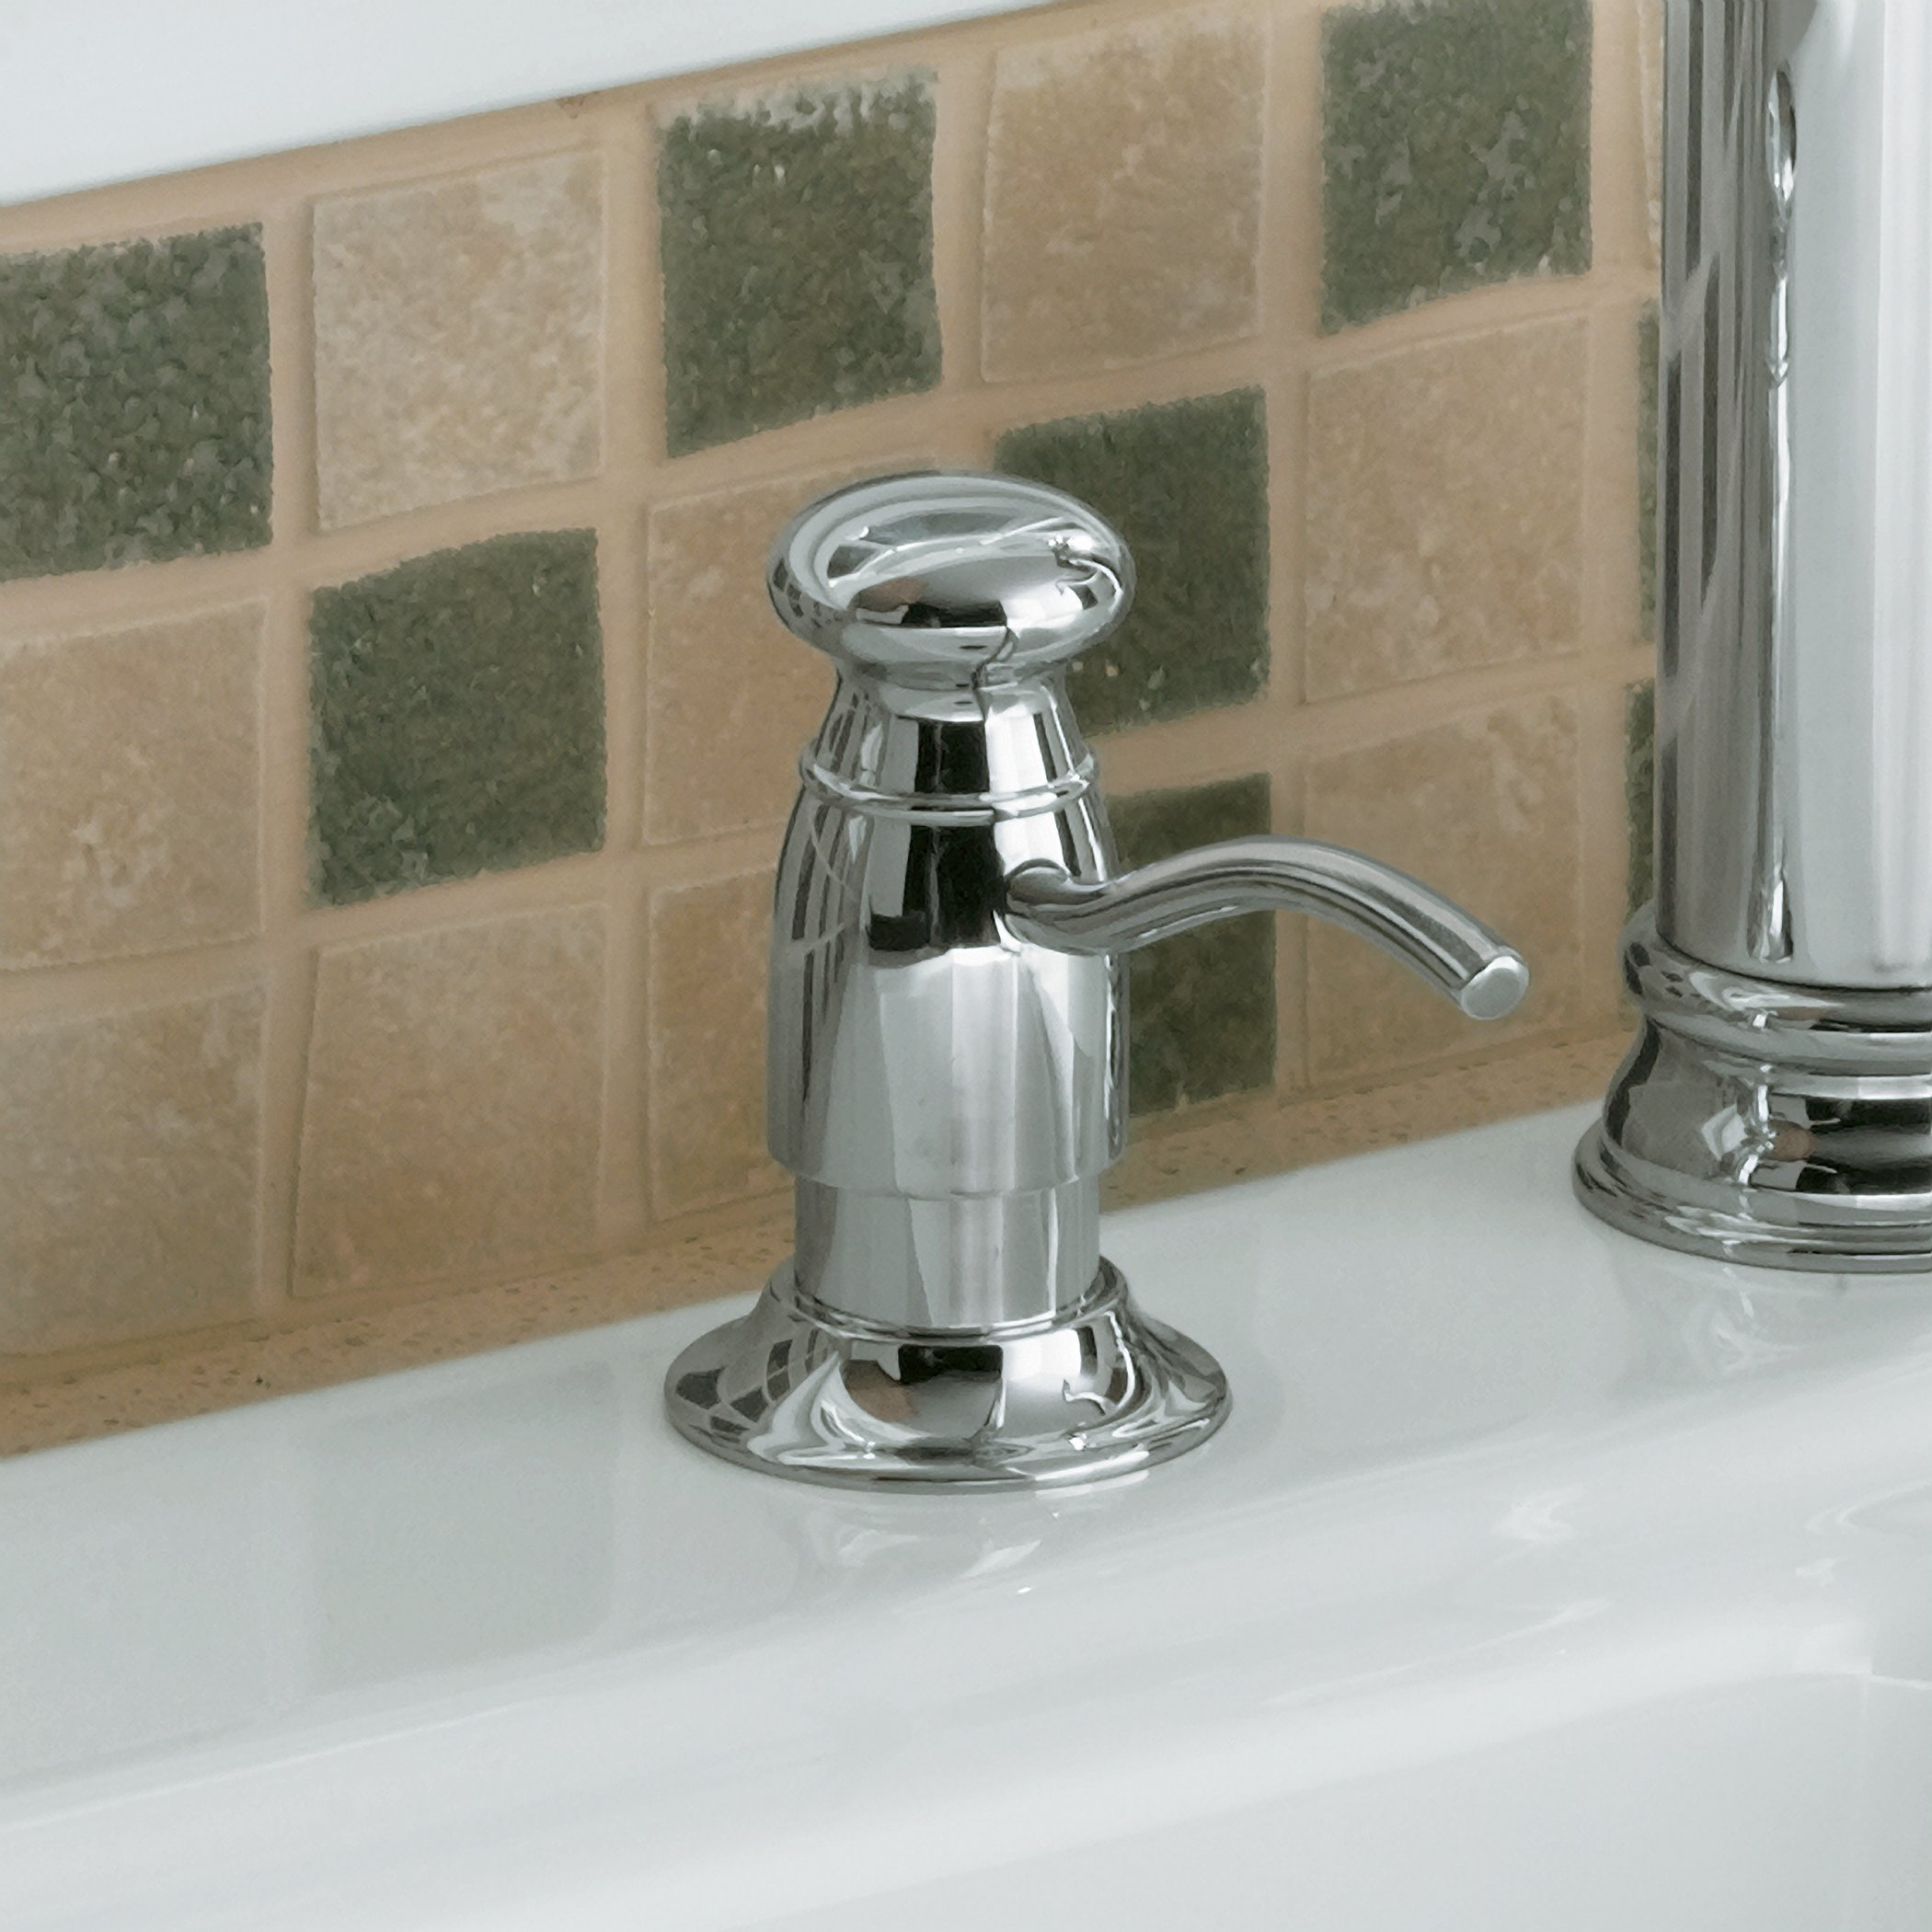 KOHLER K-1894-C-SN Soap or Lotion Dispenser with Traditional Design (Clam Shell Packed), Vibrant Polished Nickel by Kohler (Image #2)